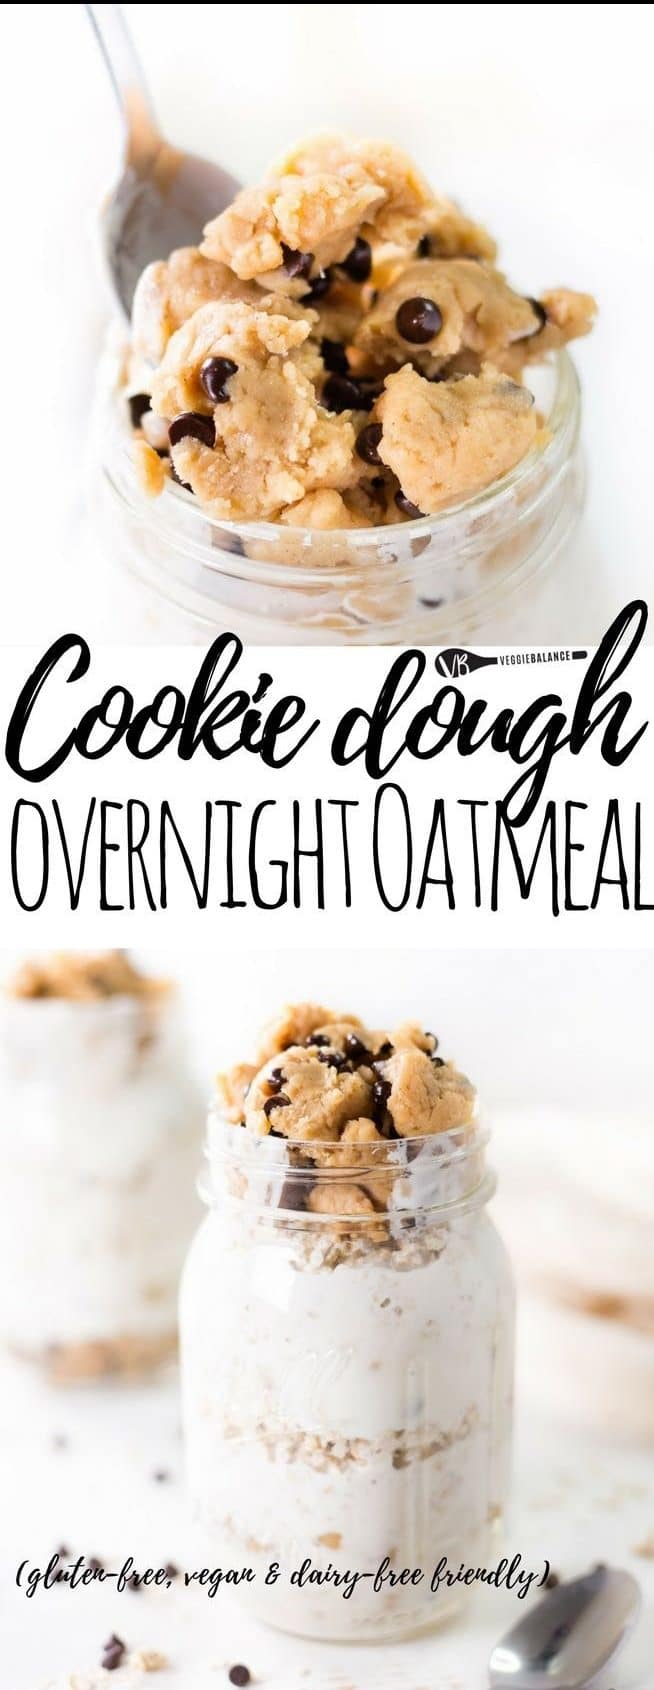 Cookie Dough Overnight Oatmeal recipe to make those mornings that much better with a healthy cookie dough layer, yogurt and oats to kick start the day with breakfast the right way.